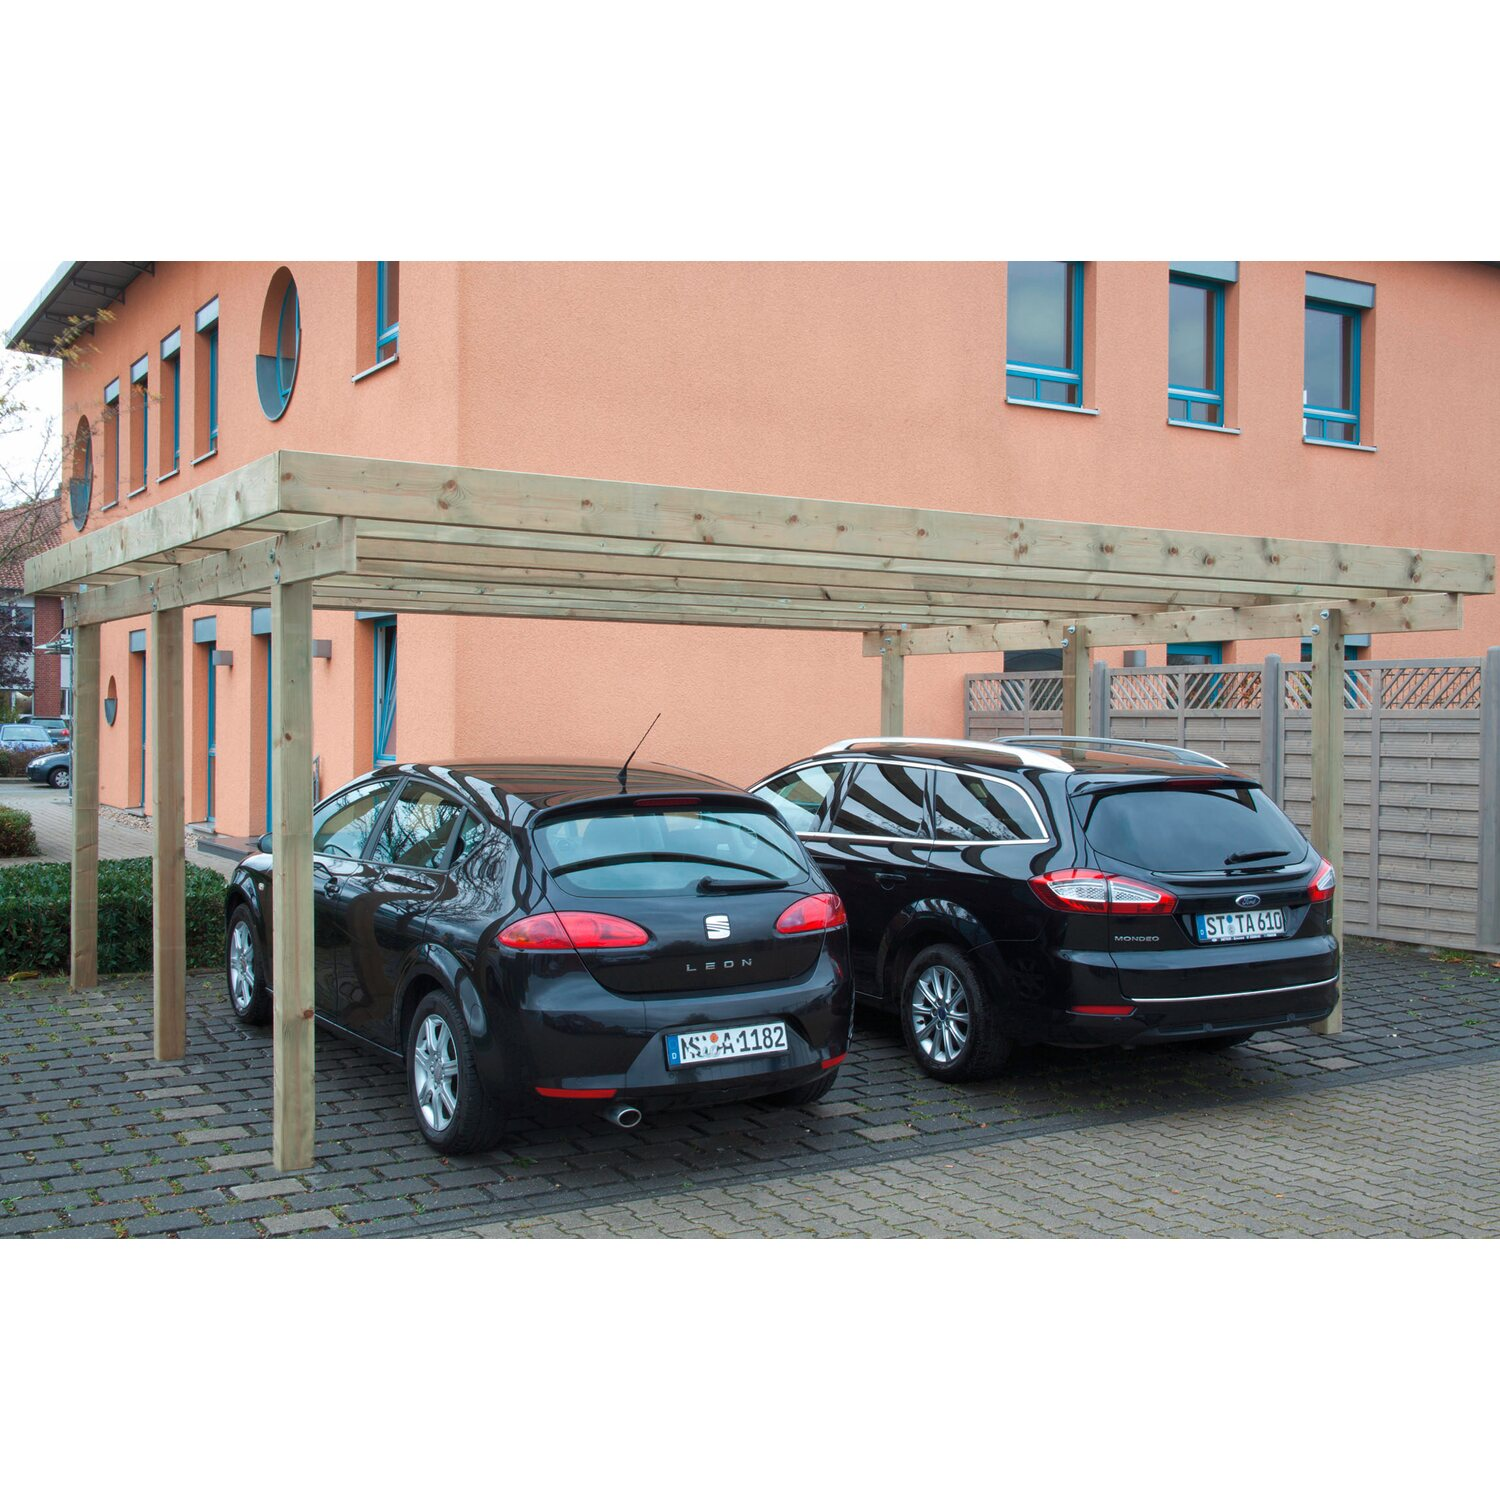 doppel carport baltrum 1 pvc dacheindeckung kdi gr n kaufen bei obi. Black Bedroom Furniture Sets. Home Design Ideas